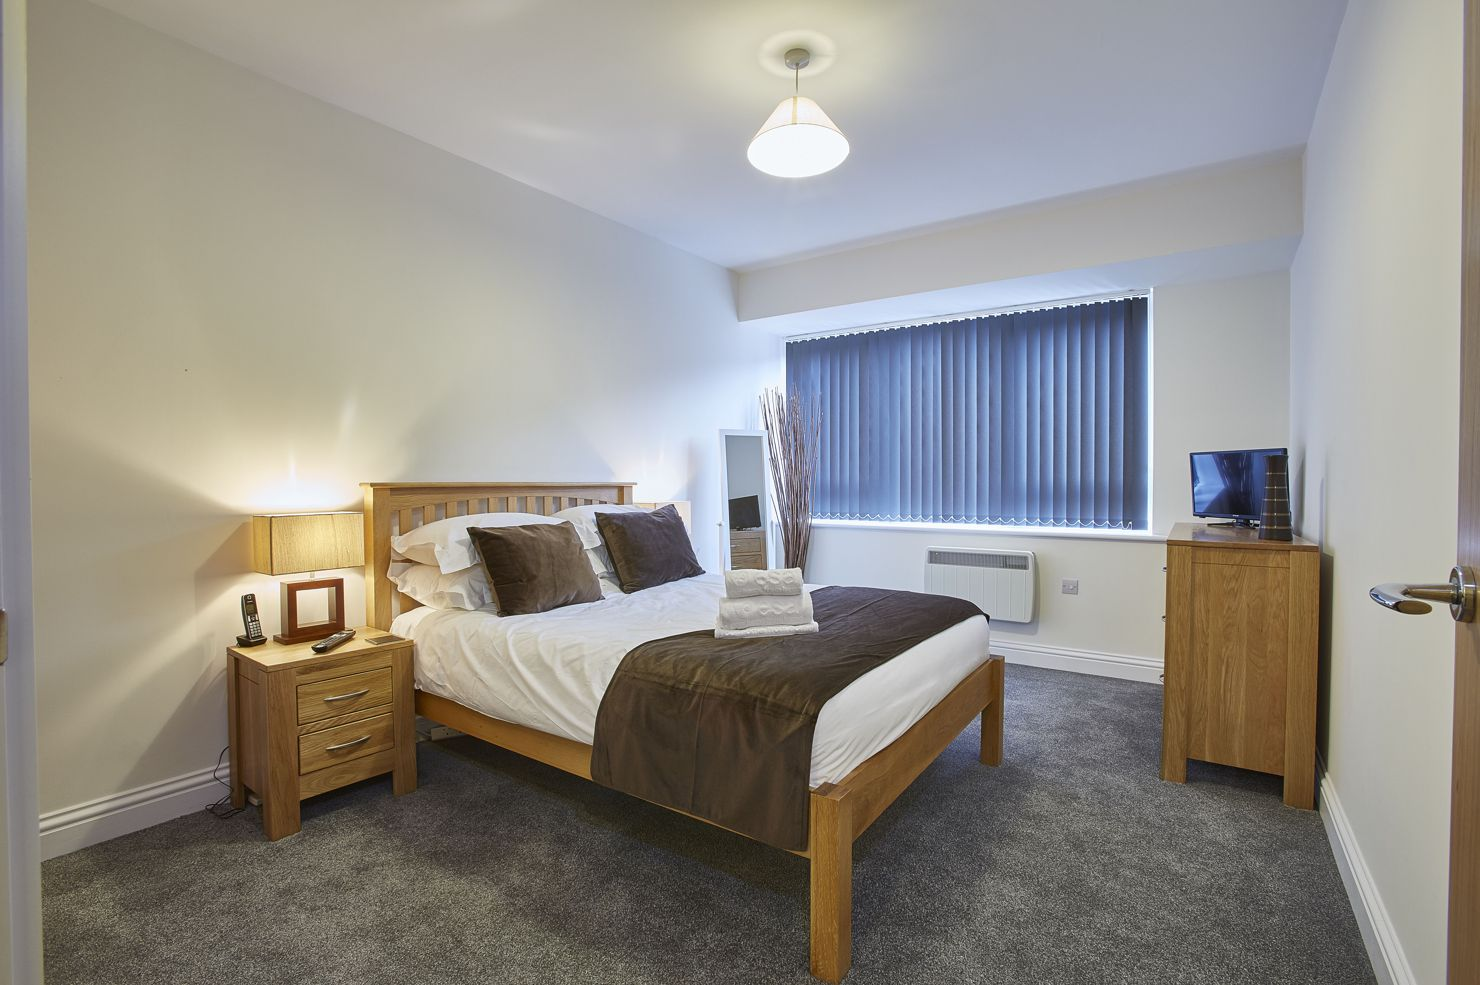 Guild-House-Self-Catering-Apartments-Swindon---Short-Stay-Accommodation-Swindon-UK-|-Urban-Stay